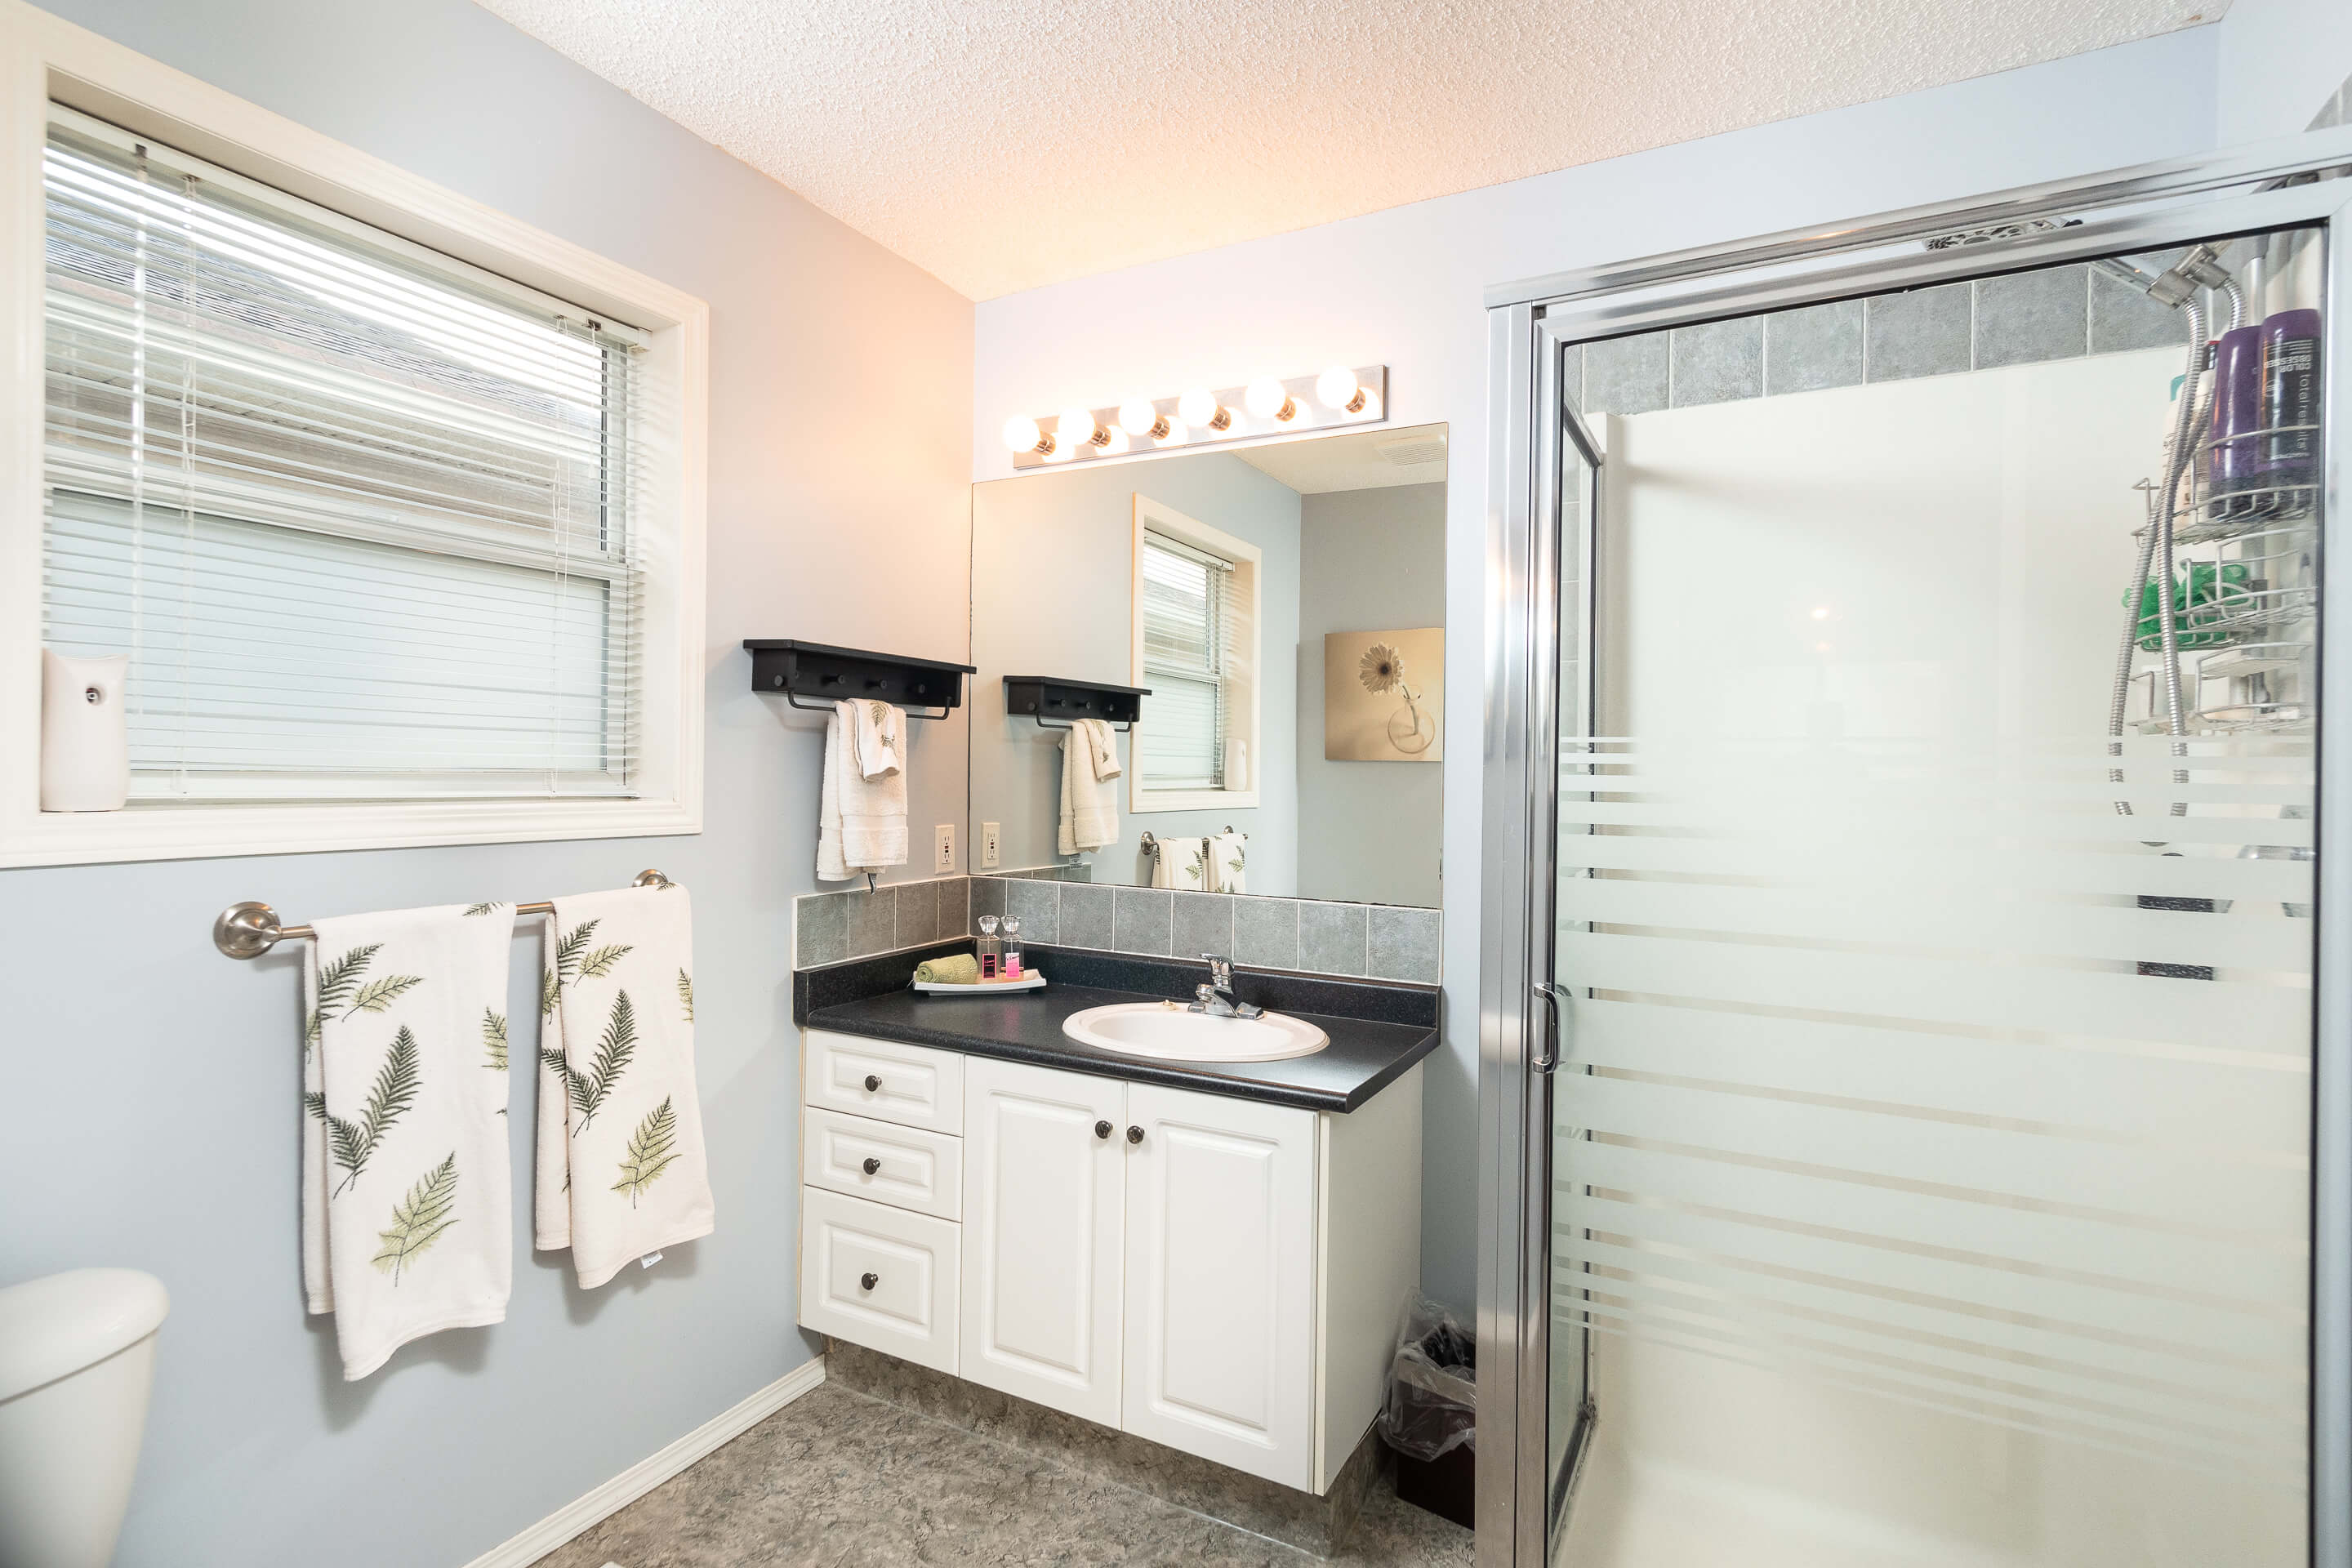 Hello Gorgeous - 225 Stonegate Crescent NW Airdrie - Tara Molina Real Estate (25 of 37)